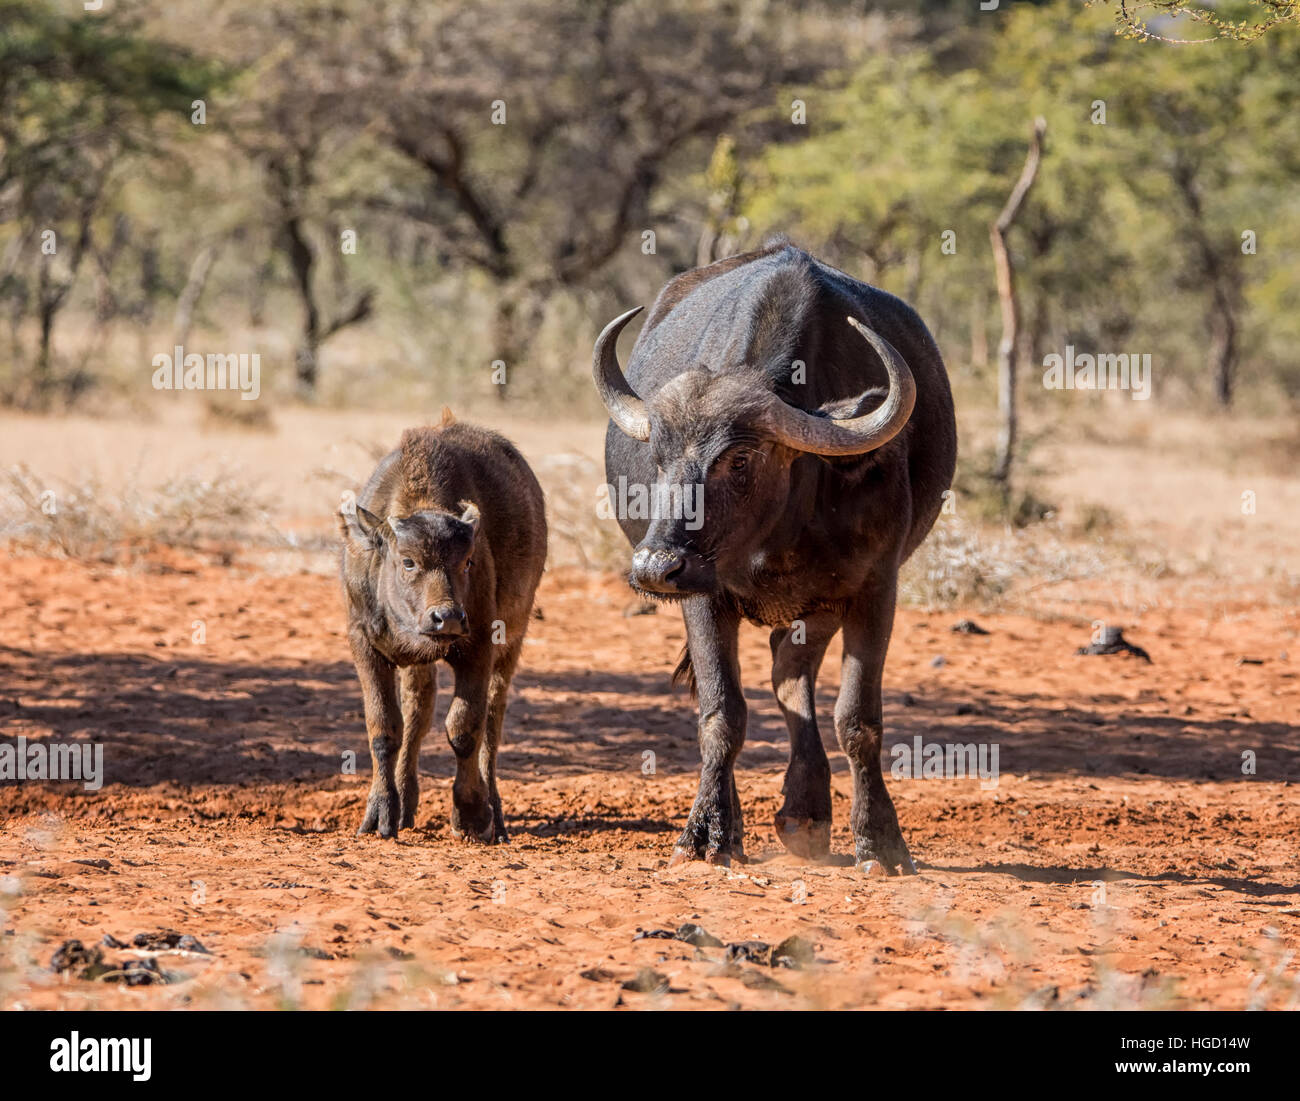 African Buffalo mother and calf - Stock Image